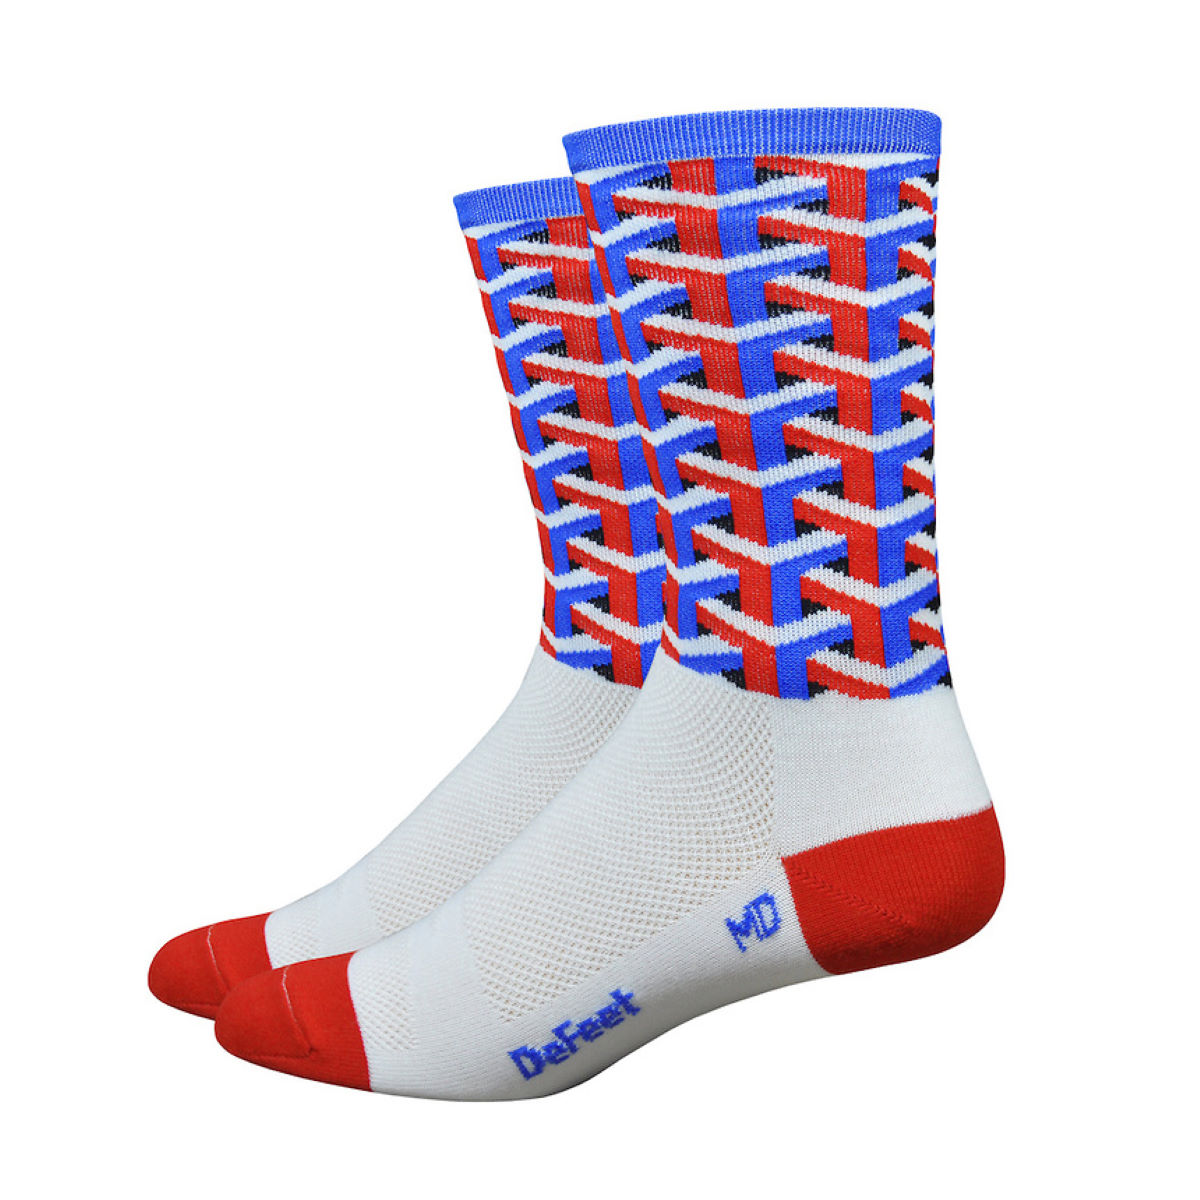 DeFeet Framework Socks - Small White | Cycle Socks